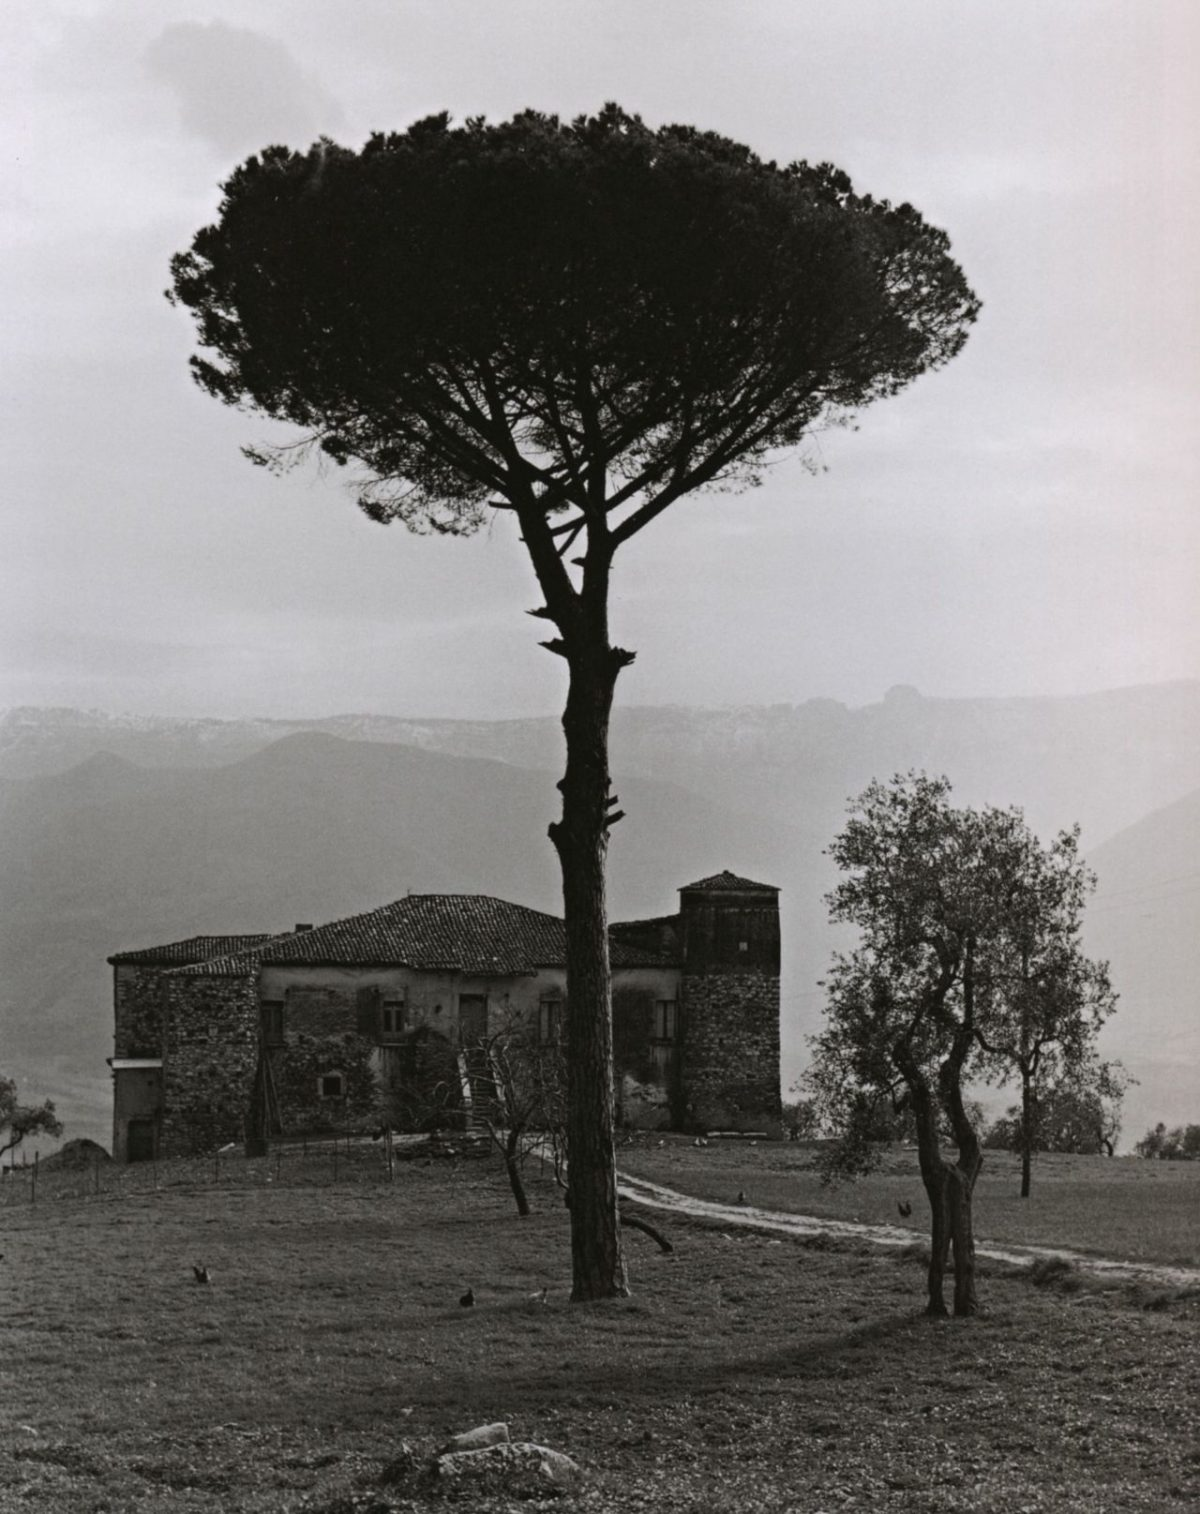 Edwin Smith, Farm in the mountains between Auletta and Potenza, Italy, 1963